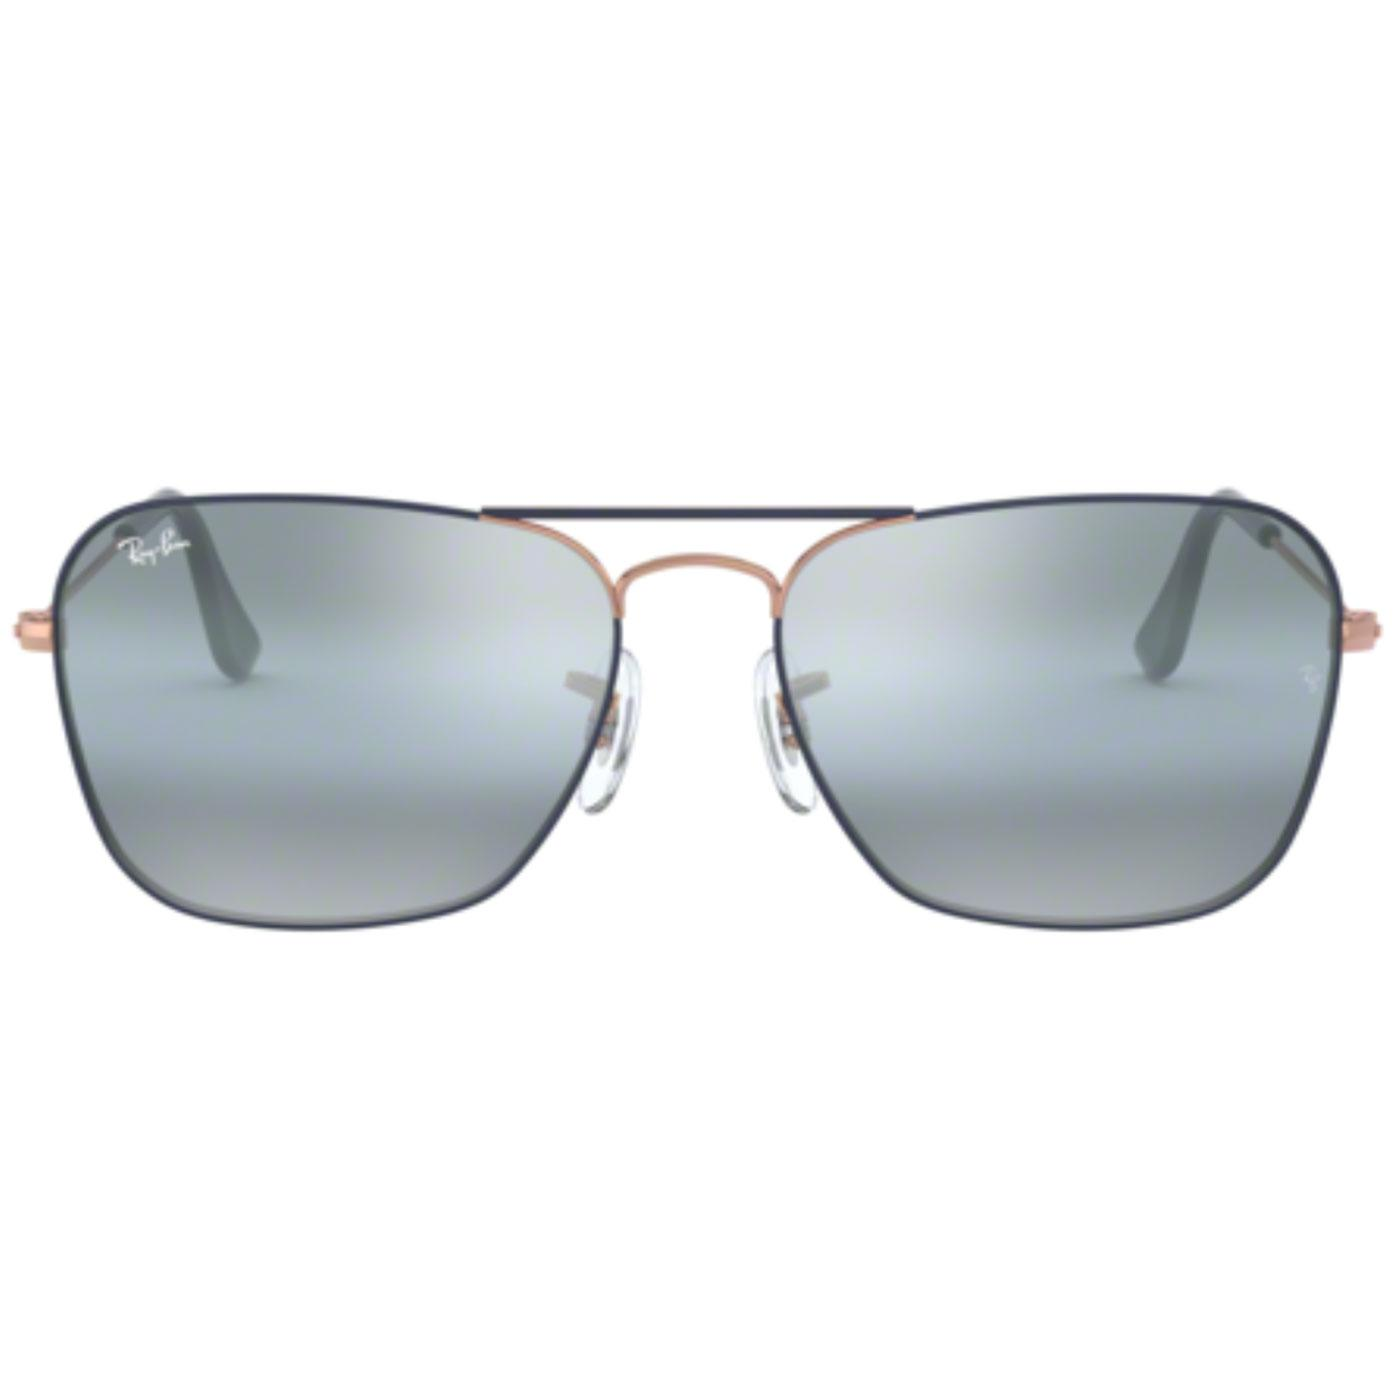 Caravan RAY-BAN Retro 50s Mod Sunglasses in Copper